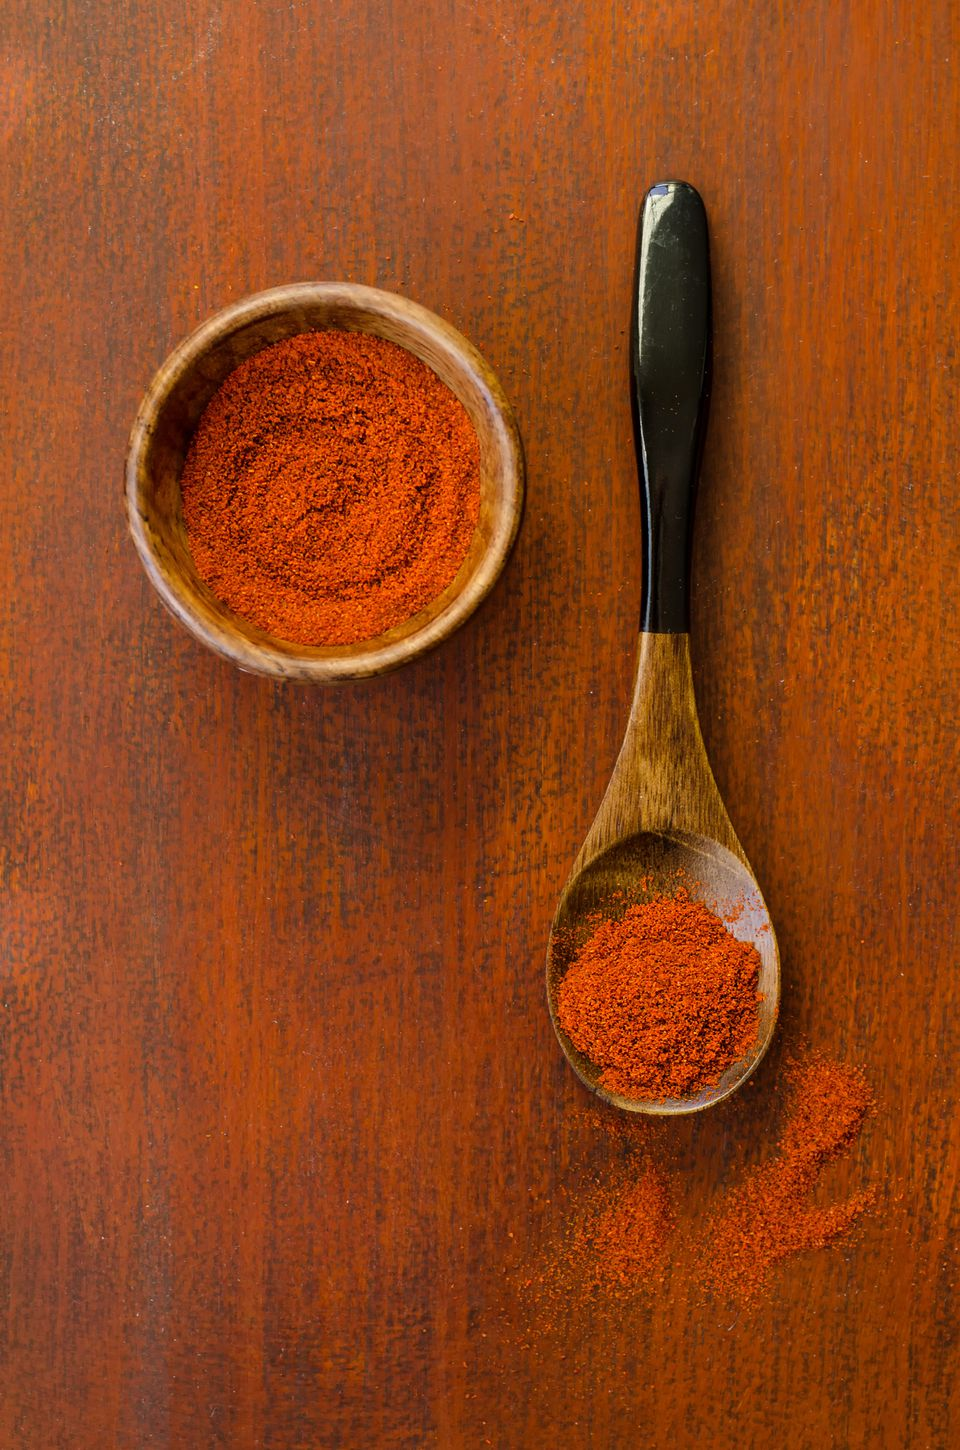 Paprika on a wooden table